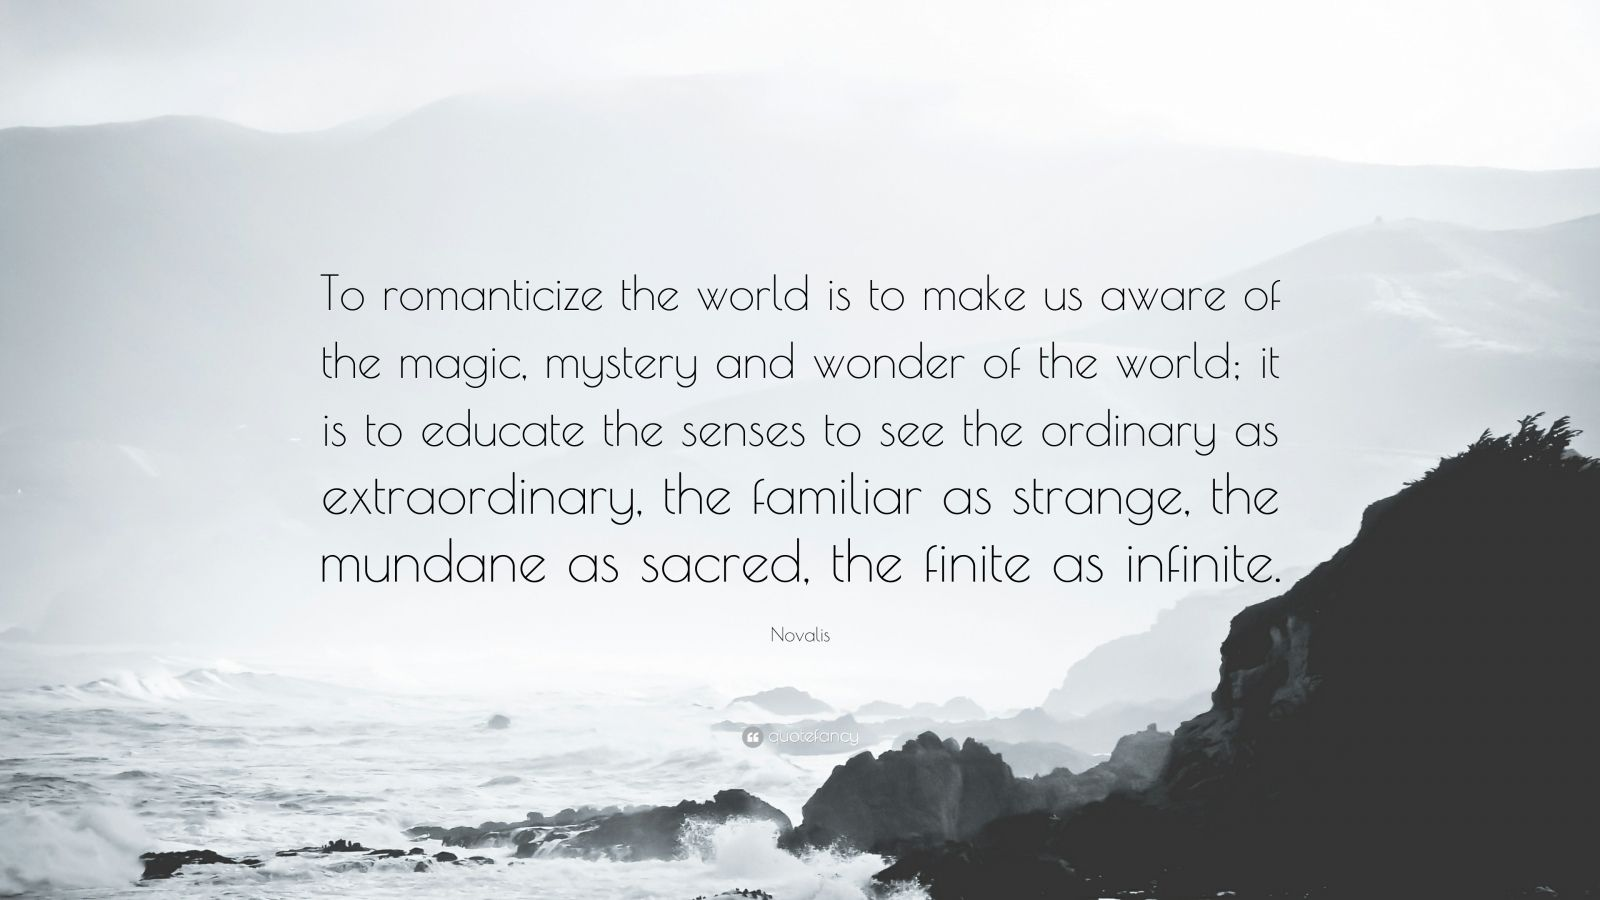 """Novalis Quote: """"To romanticize the world is to make us aware of the magic, mystery and wonder of the world; it is to educate the senses to see the ordinary as extraordinary, the familiar as strange, the mundane as sacred, the finite as infinite."""""""